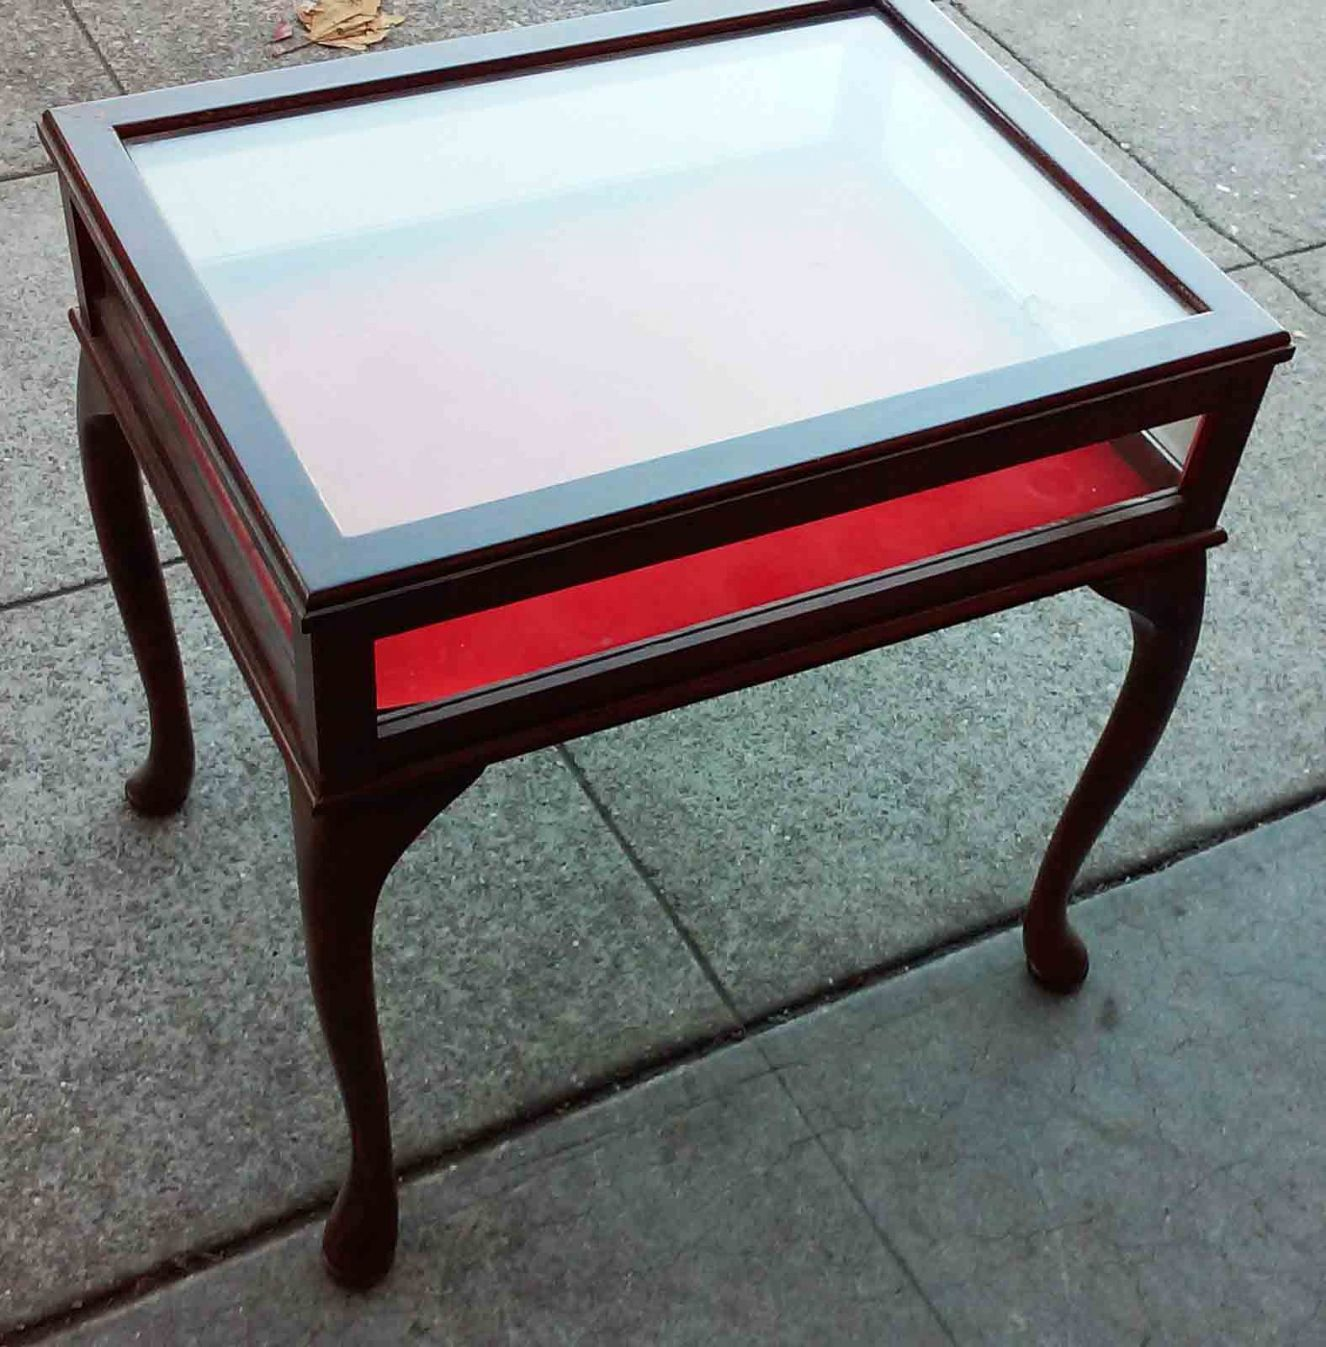 Charmant End Table Display Case   Modern Italian Furniture Check More At Http://www